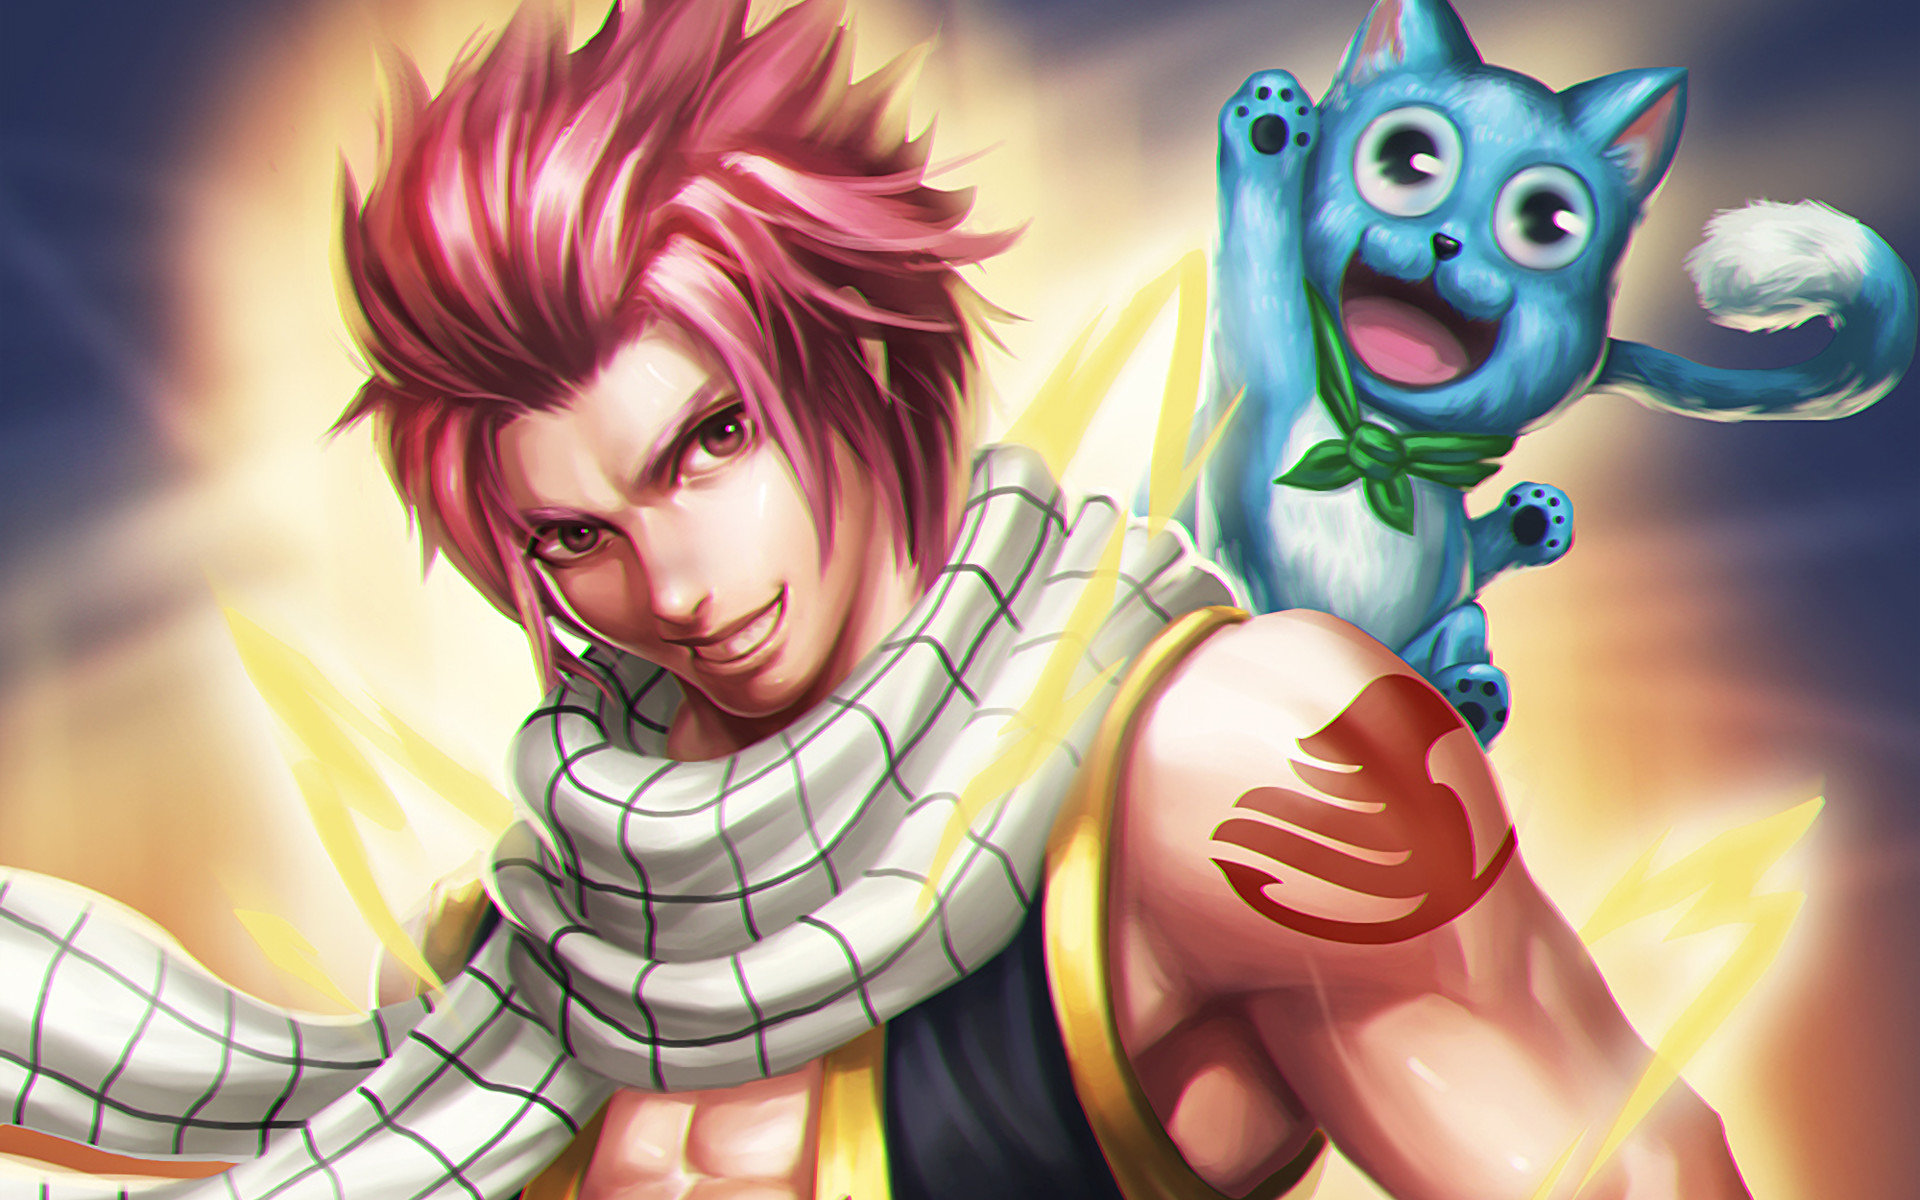 Download hd 1920x1200 Fairy Tail desktop wallpaper ID:41483 for free